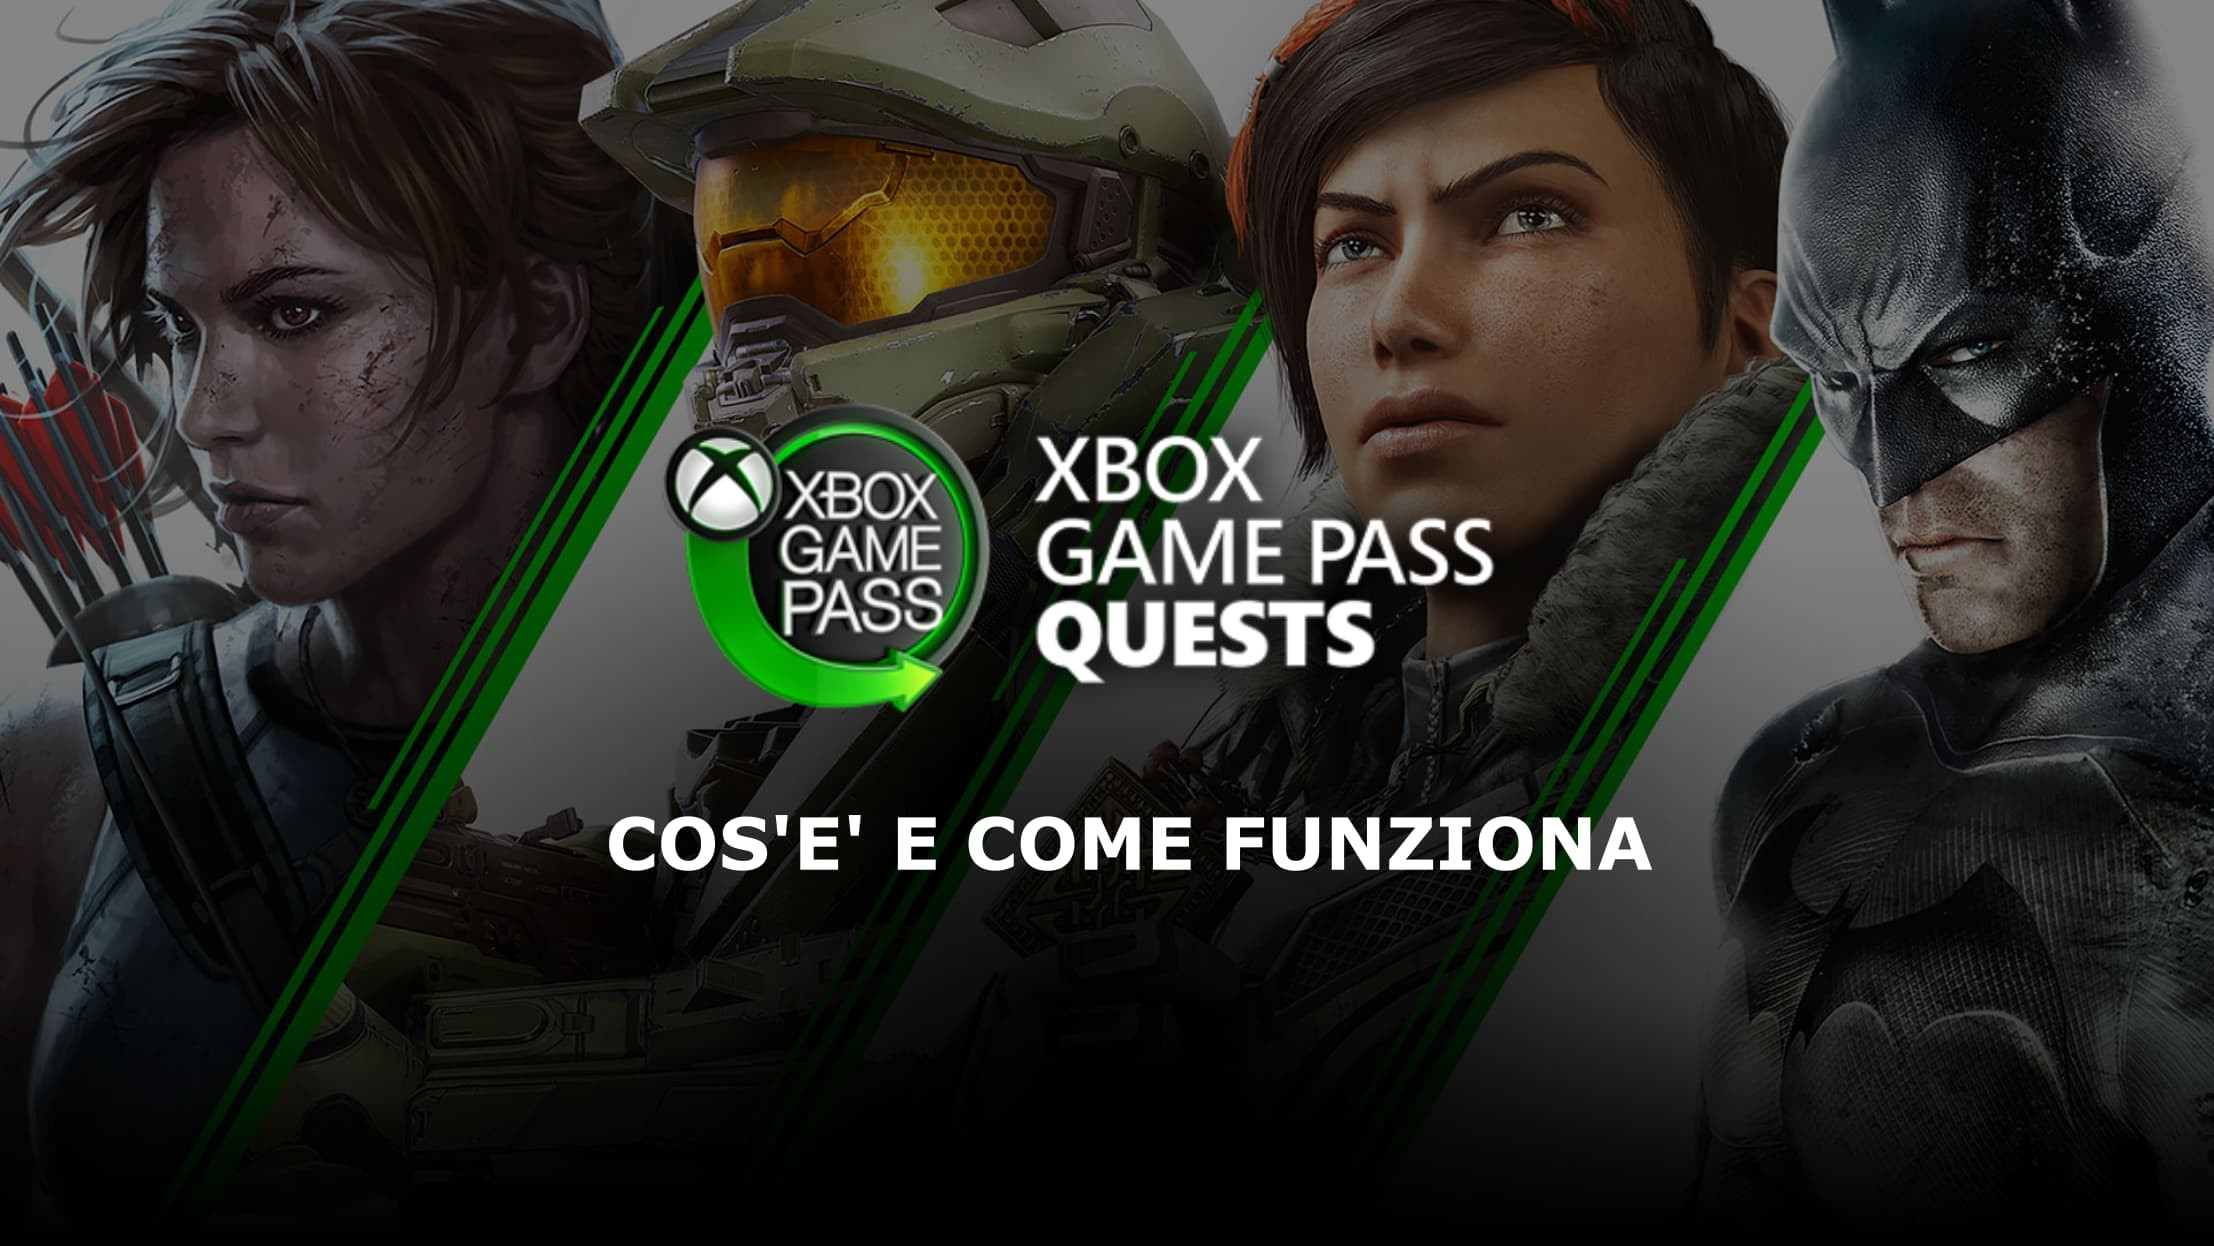 Copertina guida Xbox Game Pass Quests